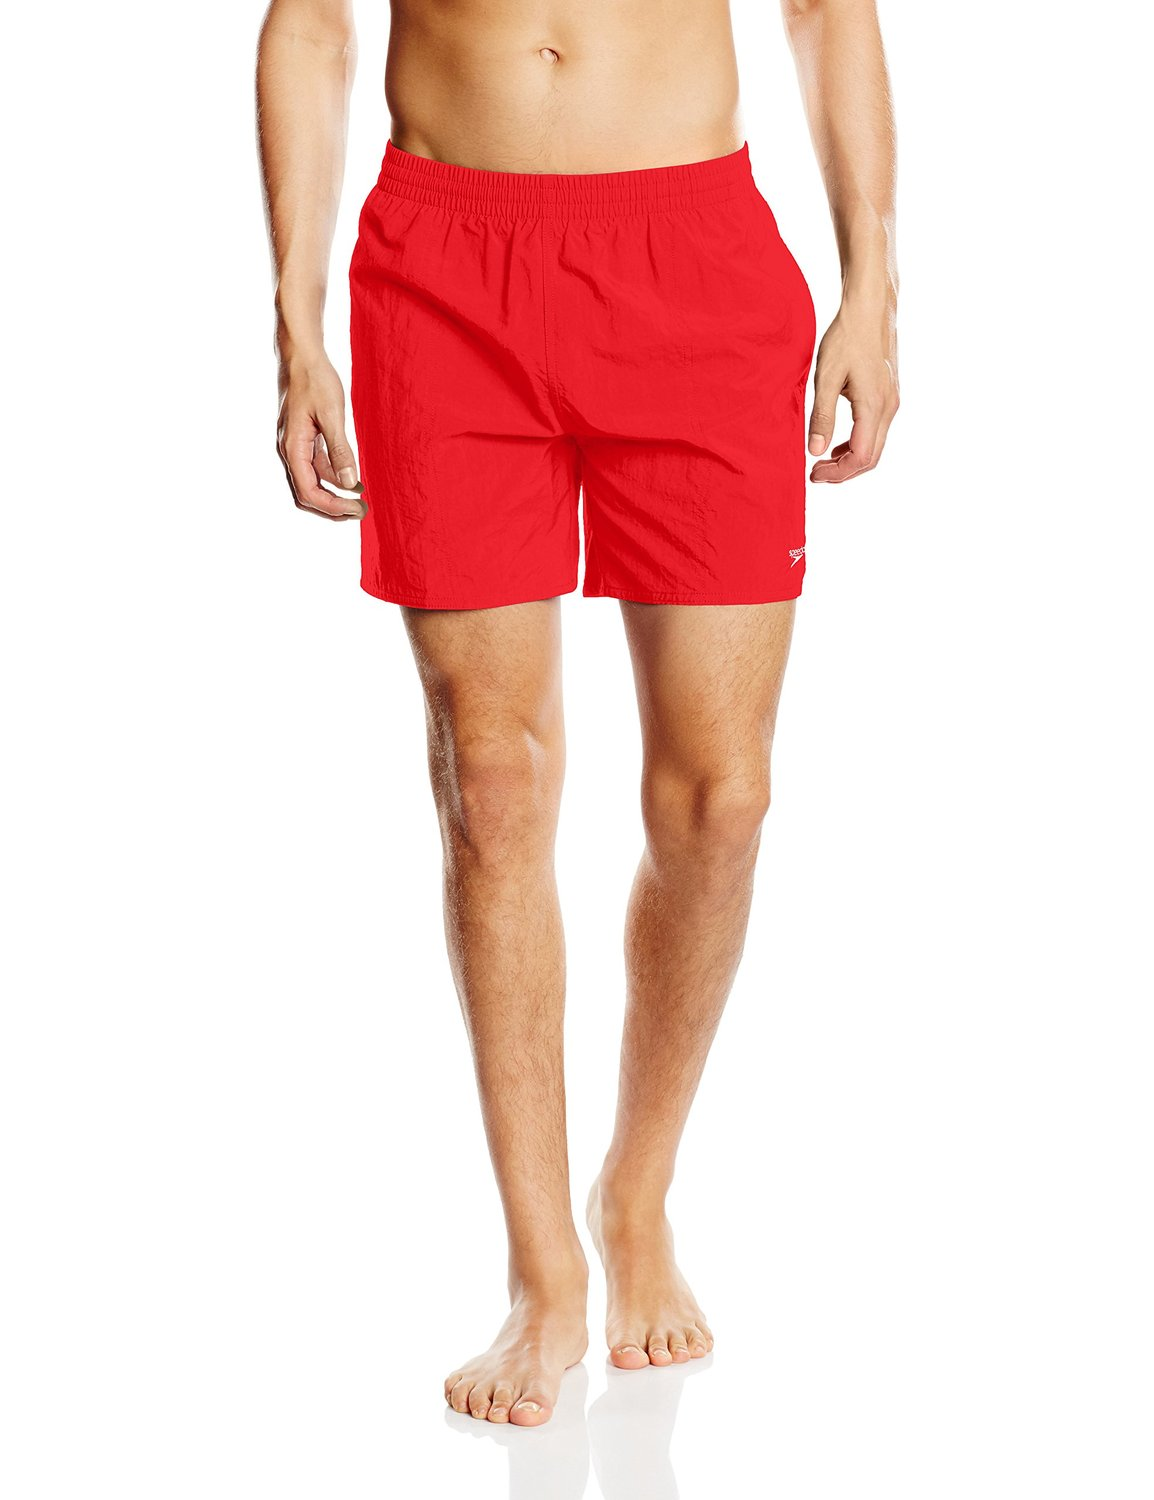 cdfd7c722a Buy Speedo Mens Solid Leisure 16 Inch Swimming Shorts in Cheap Price ...